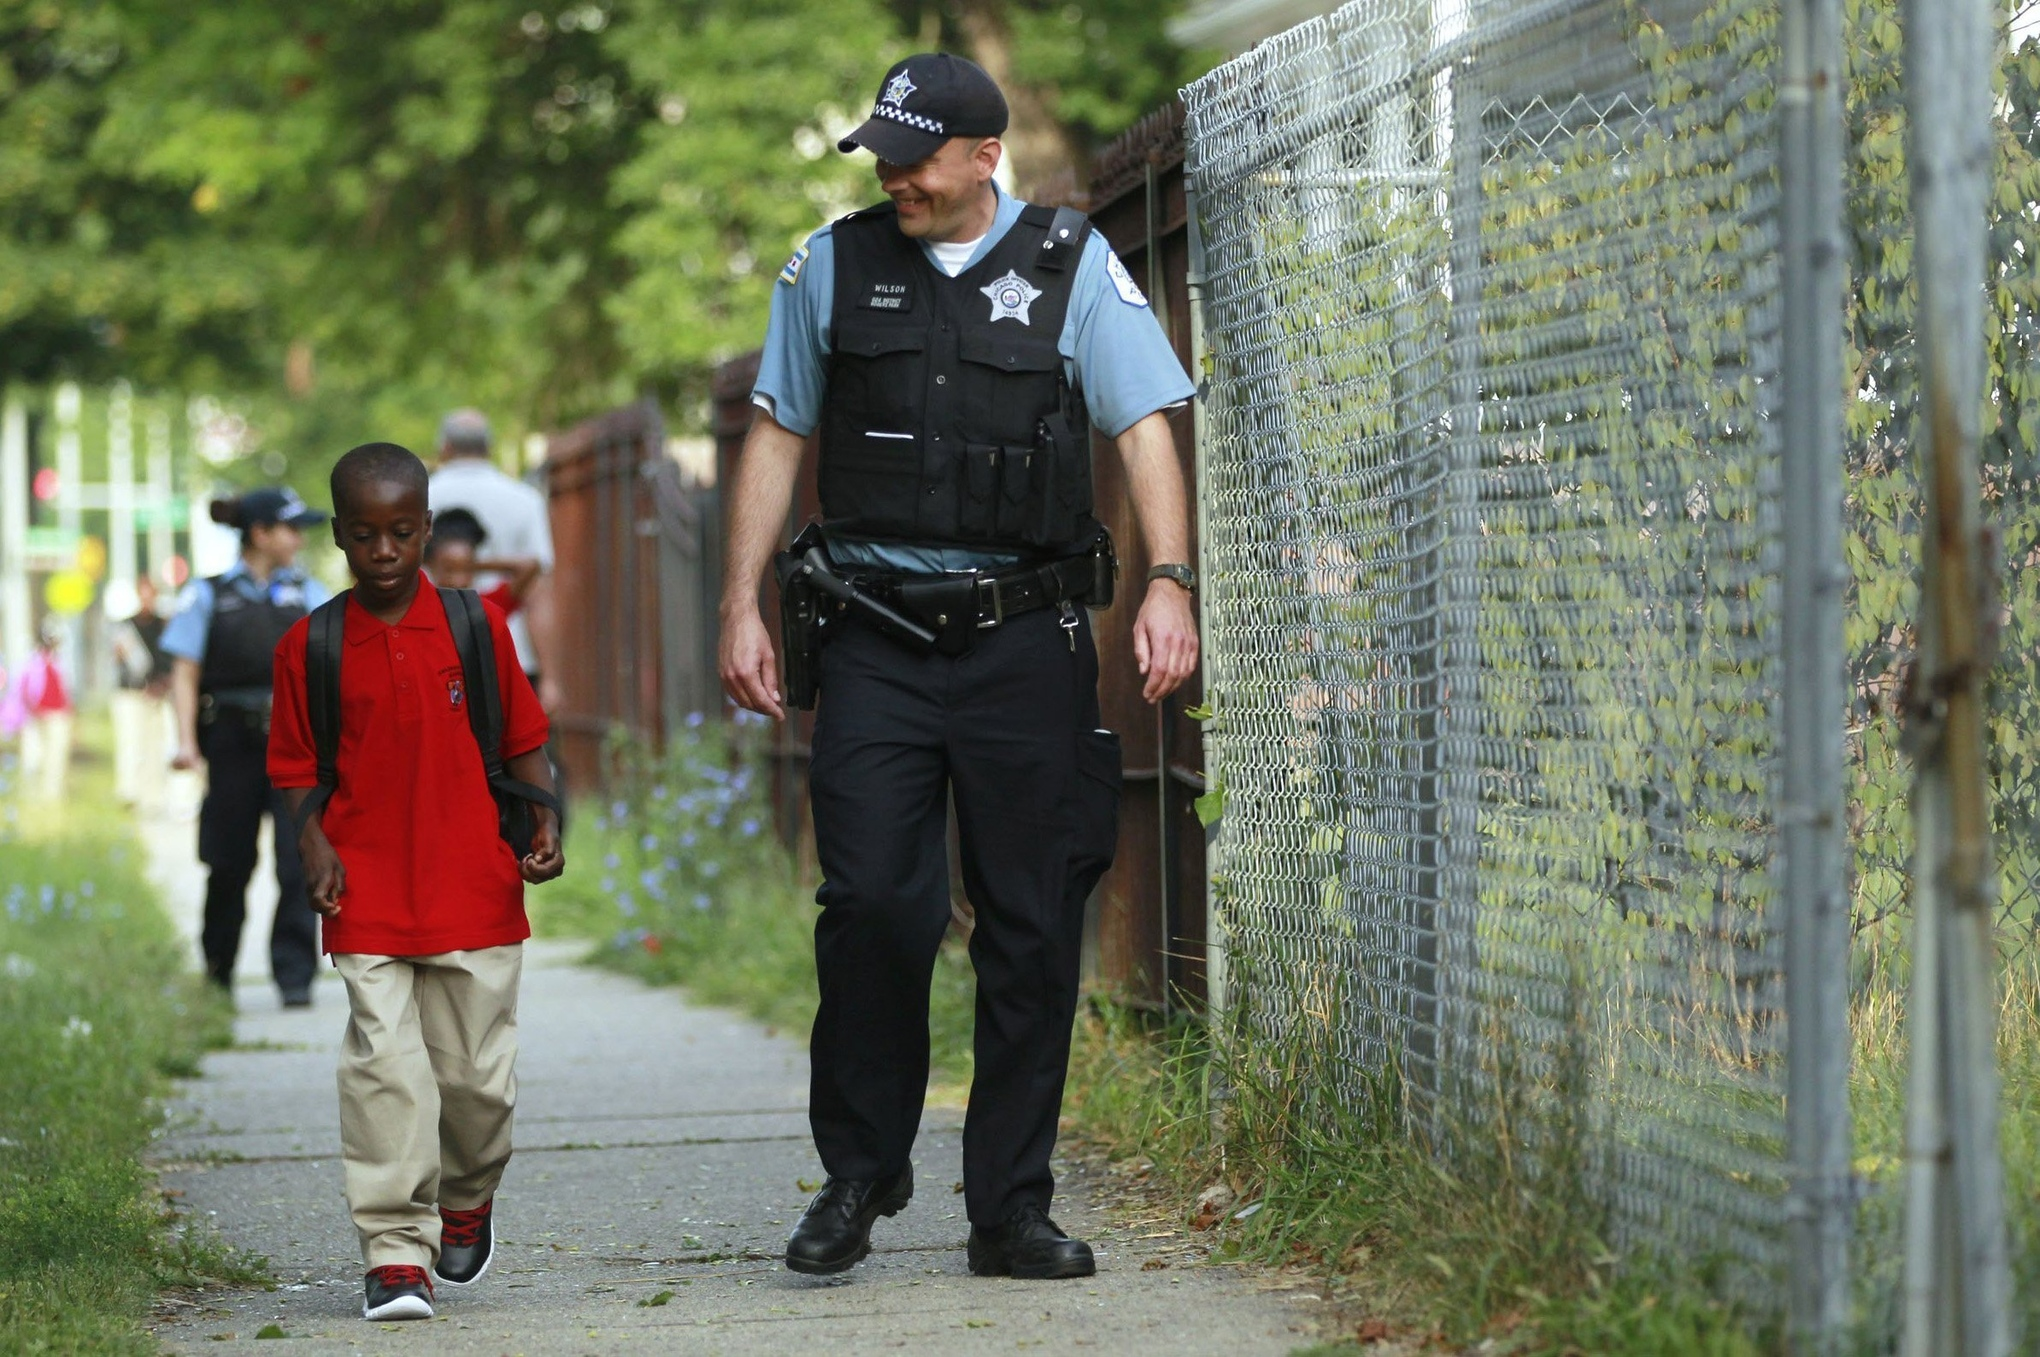 Kids Arrested In School Are More Likely